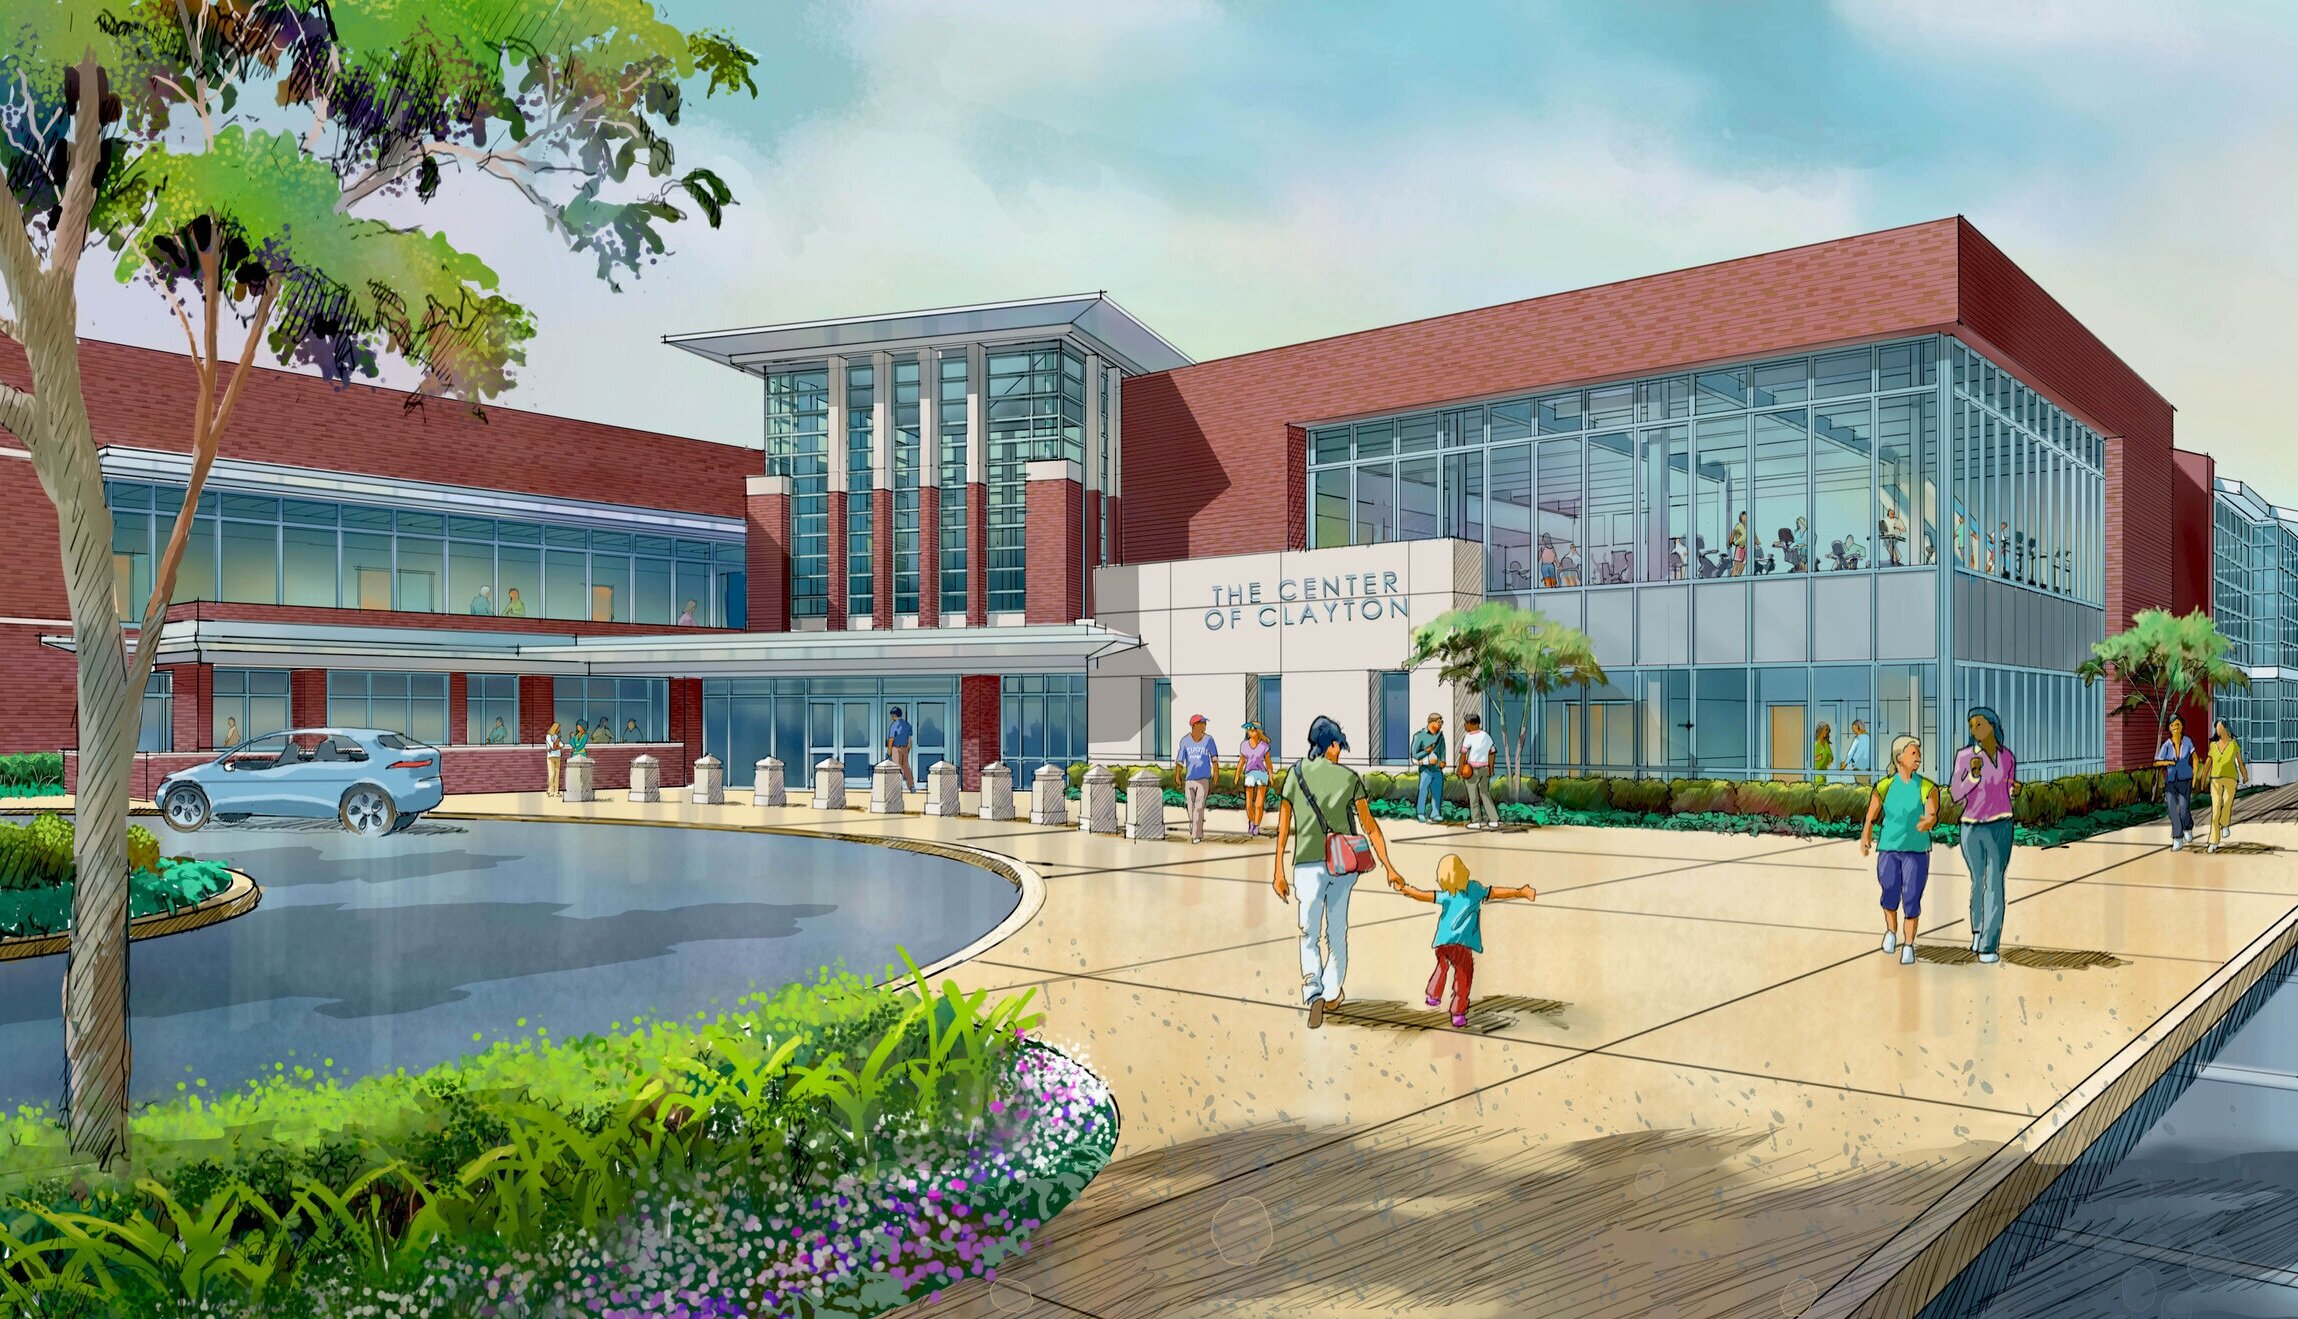 Rendering of the new addition and entrance plaza